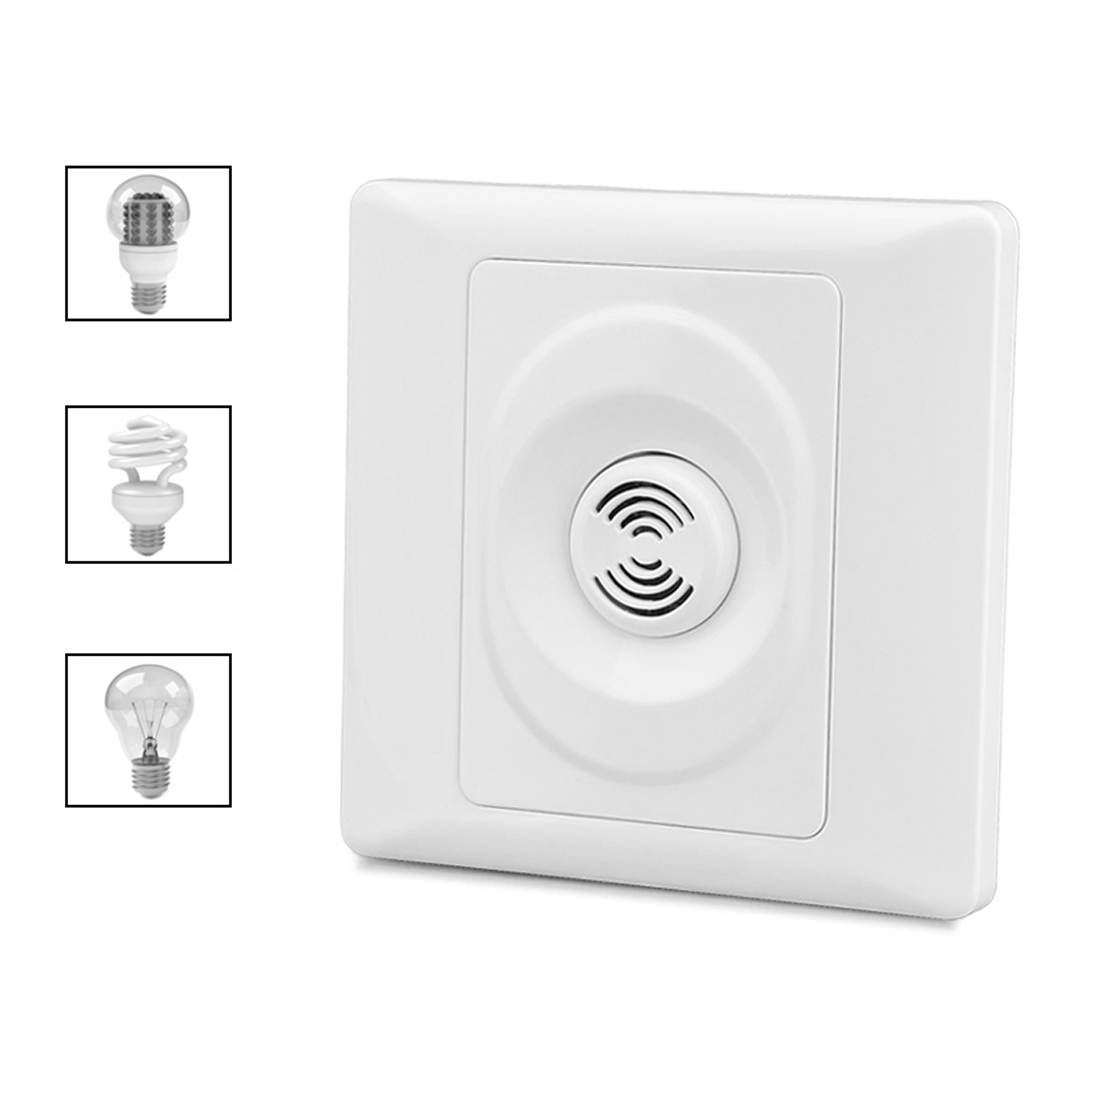 86 X 86mm Switch Control Light Sensor Switch 220v Smart Home Wall Mount Smart Voice Sound & Light Controlled Delay Switch Low Price